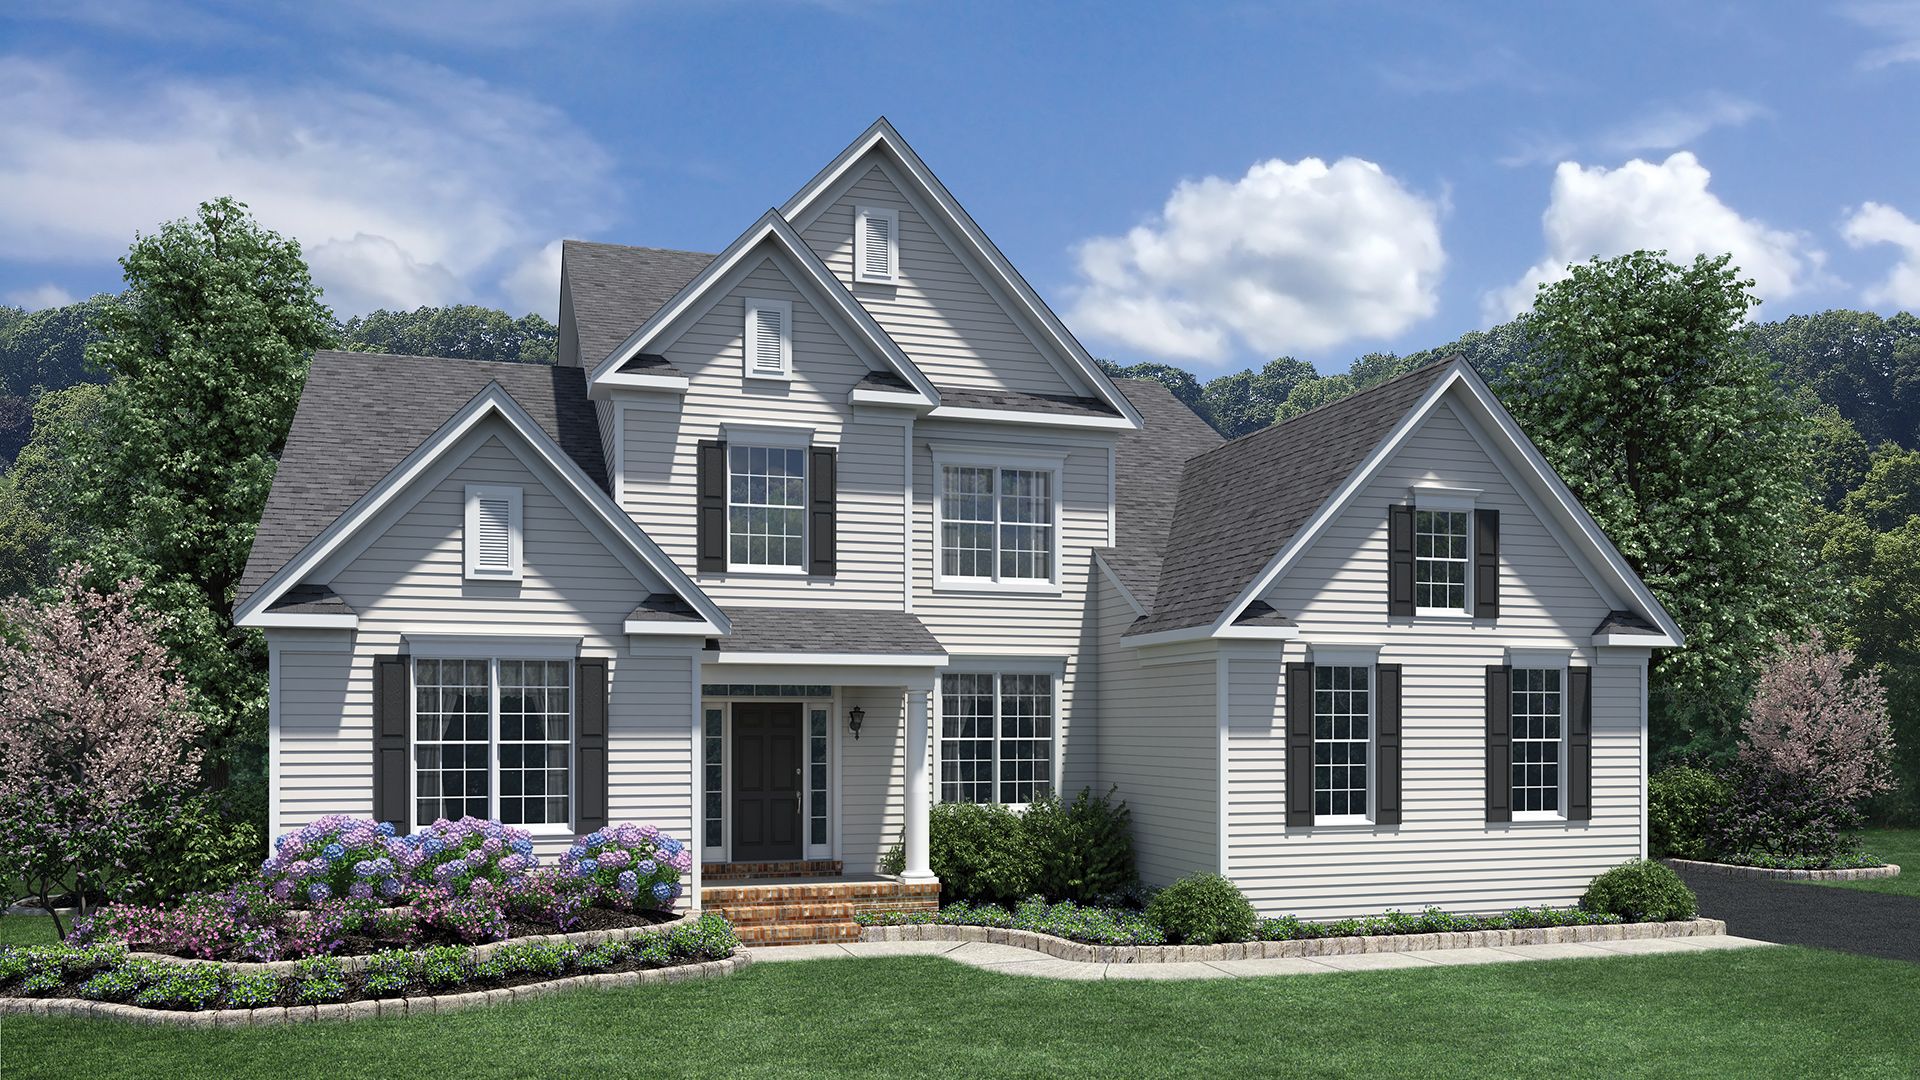 New Luxury Homes For Sale In South Windsor Ct